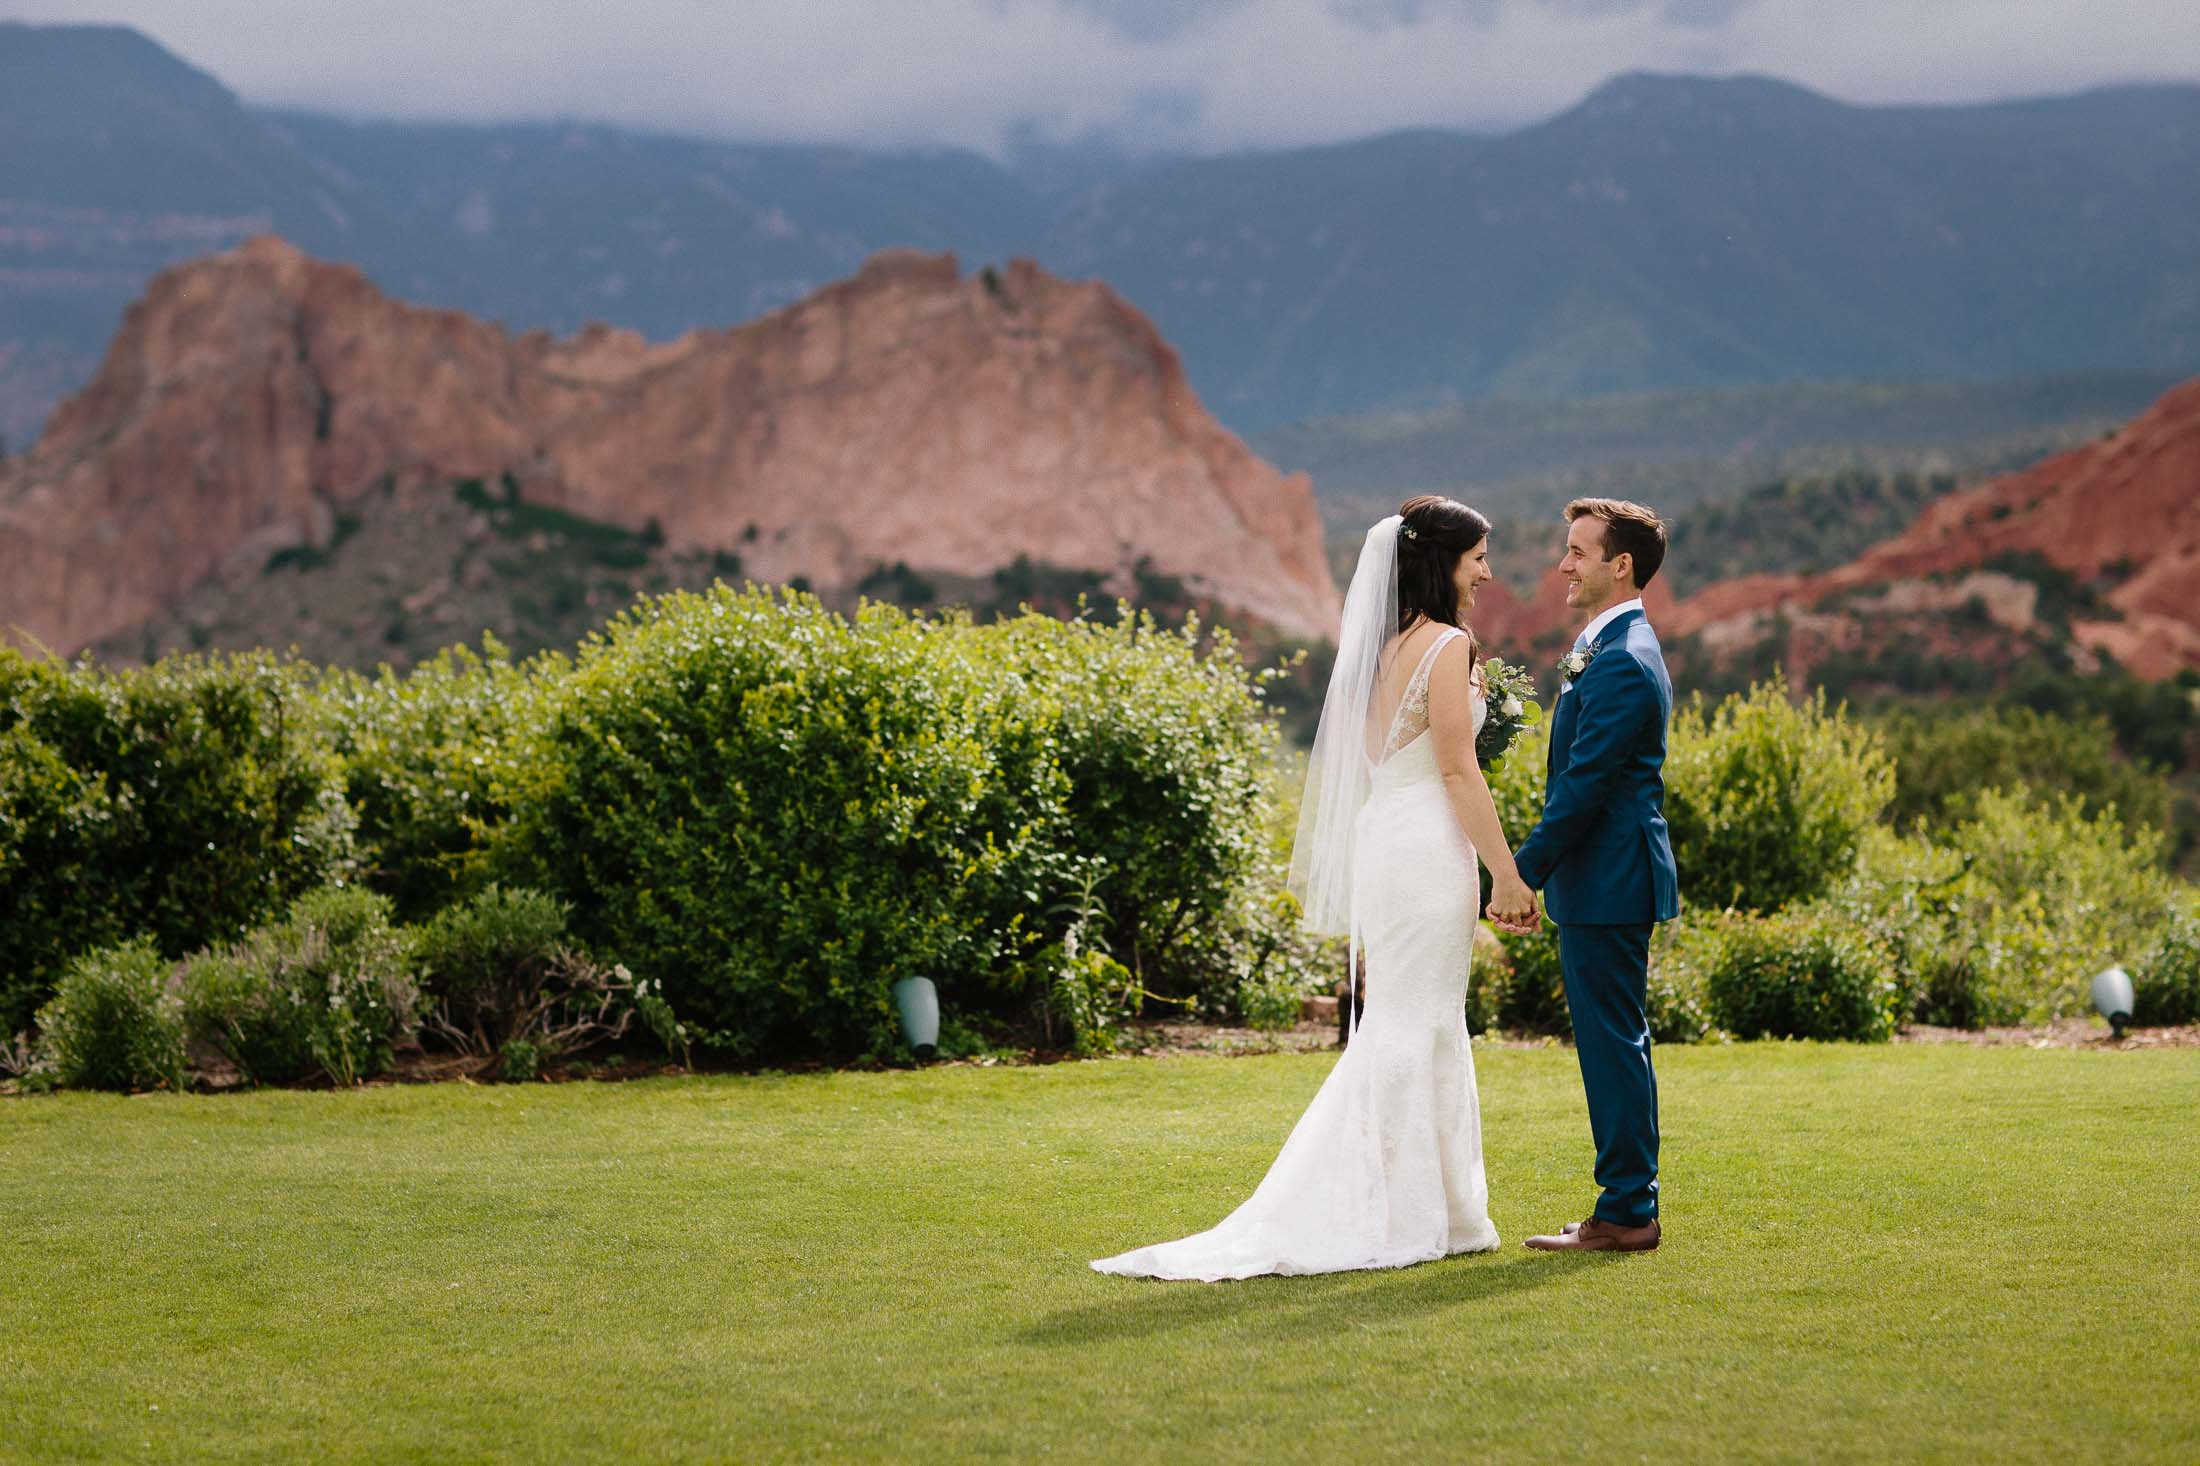 Bride and groomsstand together on the lawn in front of the Garden of the Gods rock formation.